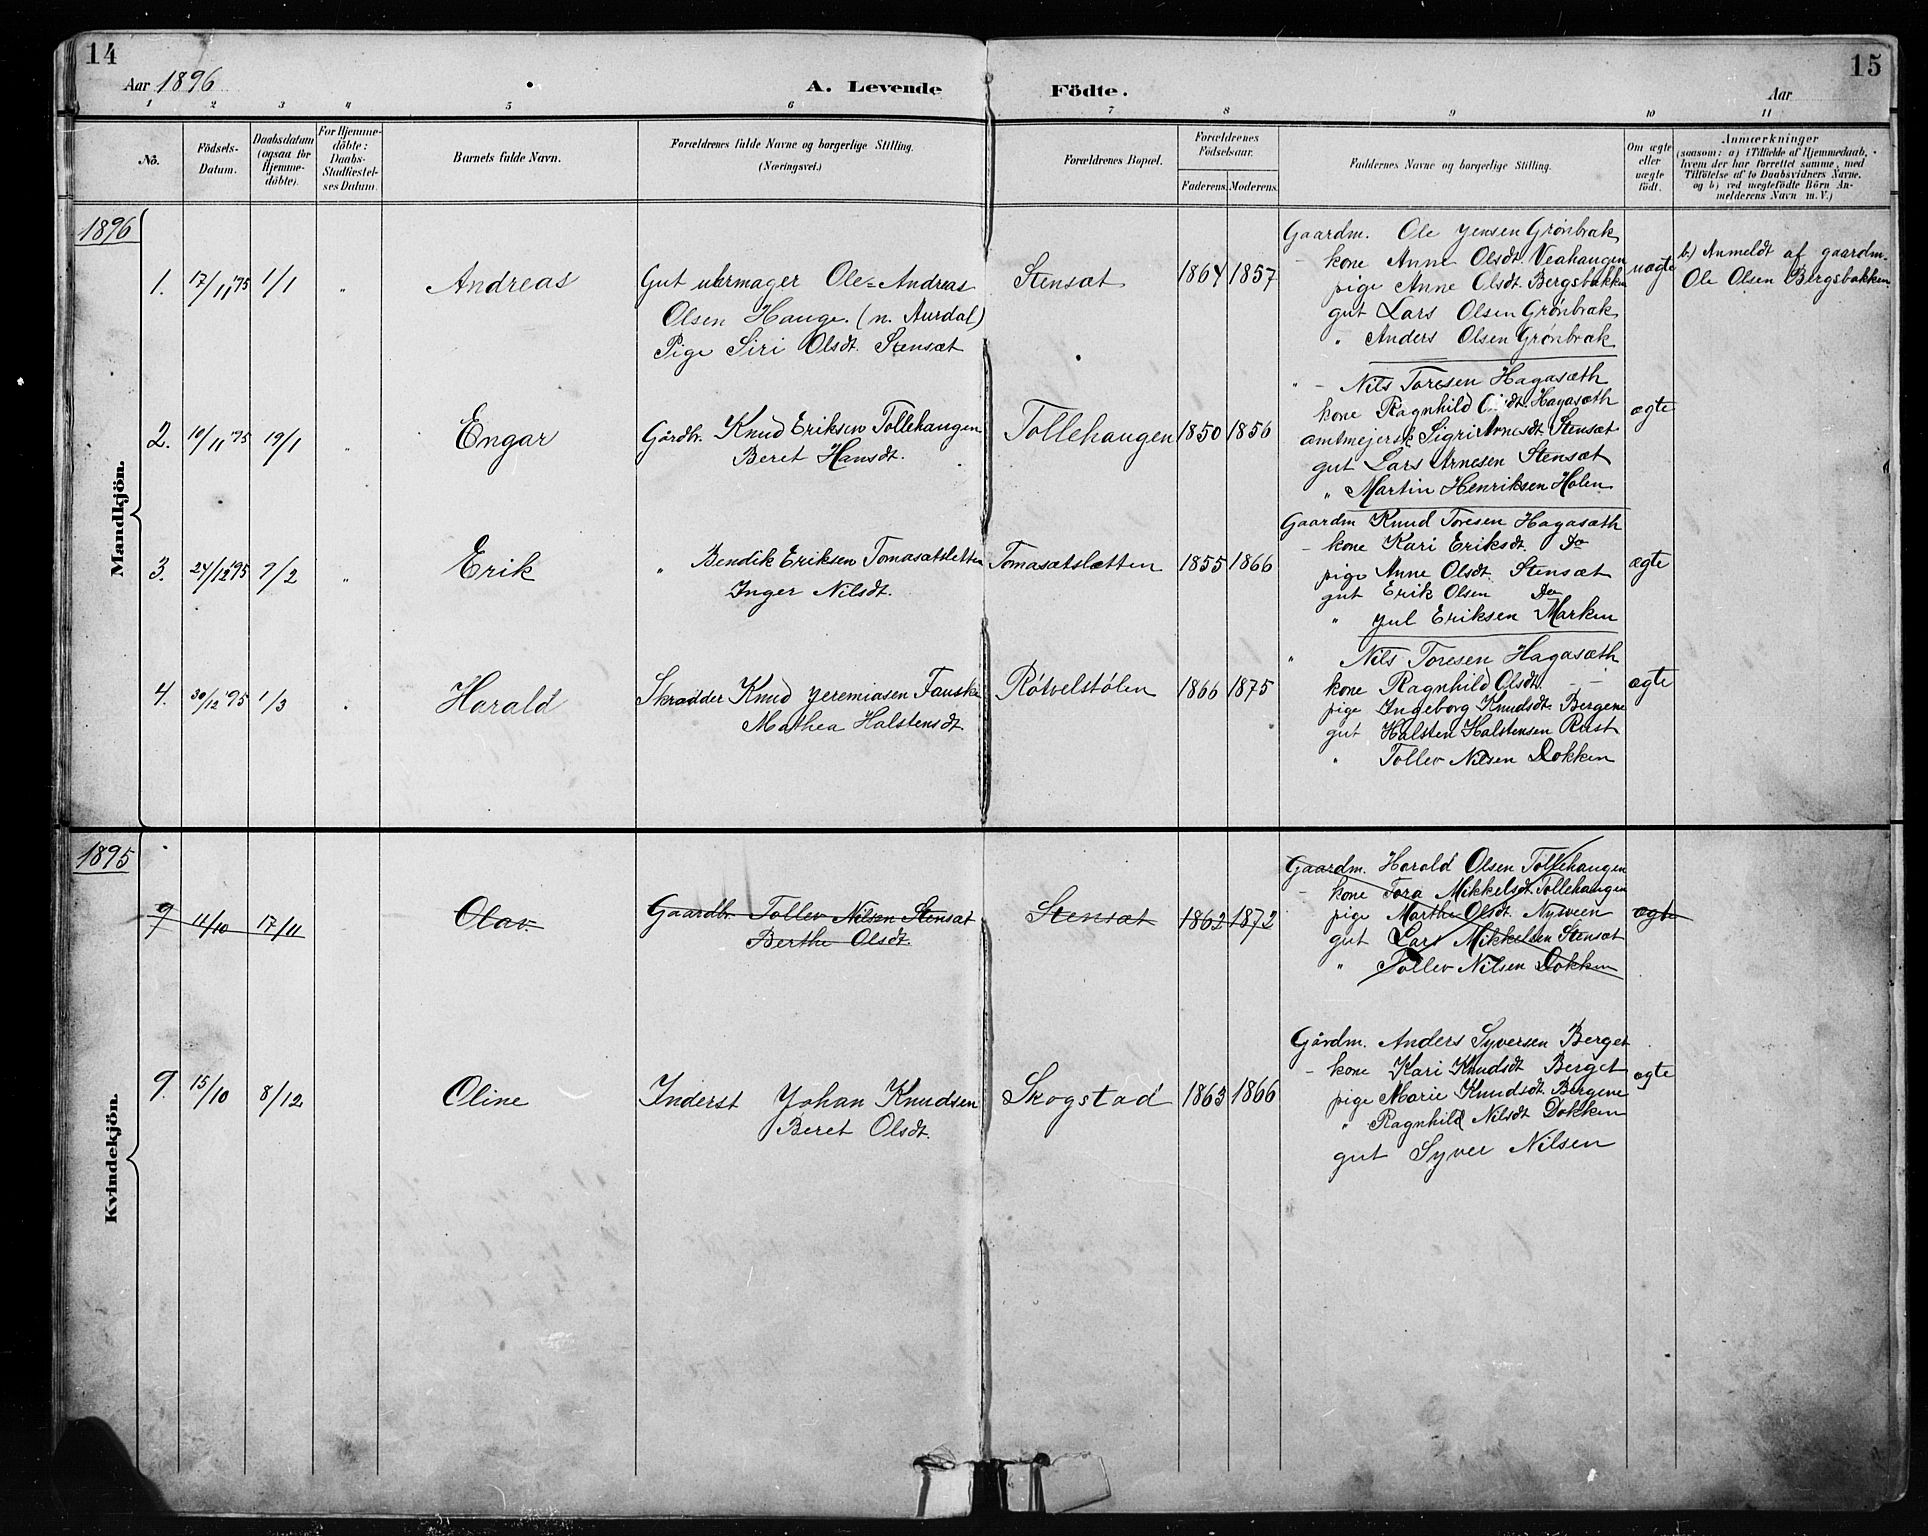 SAH, Etnedal prestekontor, H/Ha/Hab/Habb/L0001: Parish register (copy) no. II 1, 1894-1911, p. 14-15